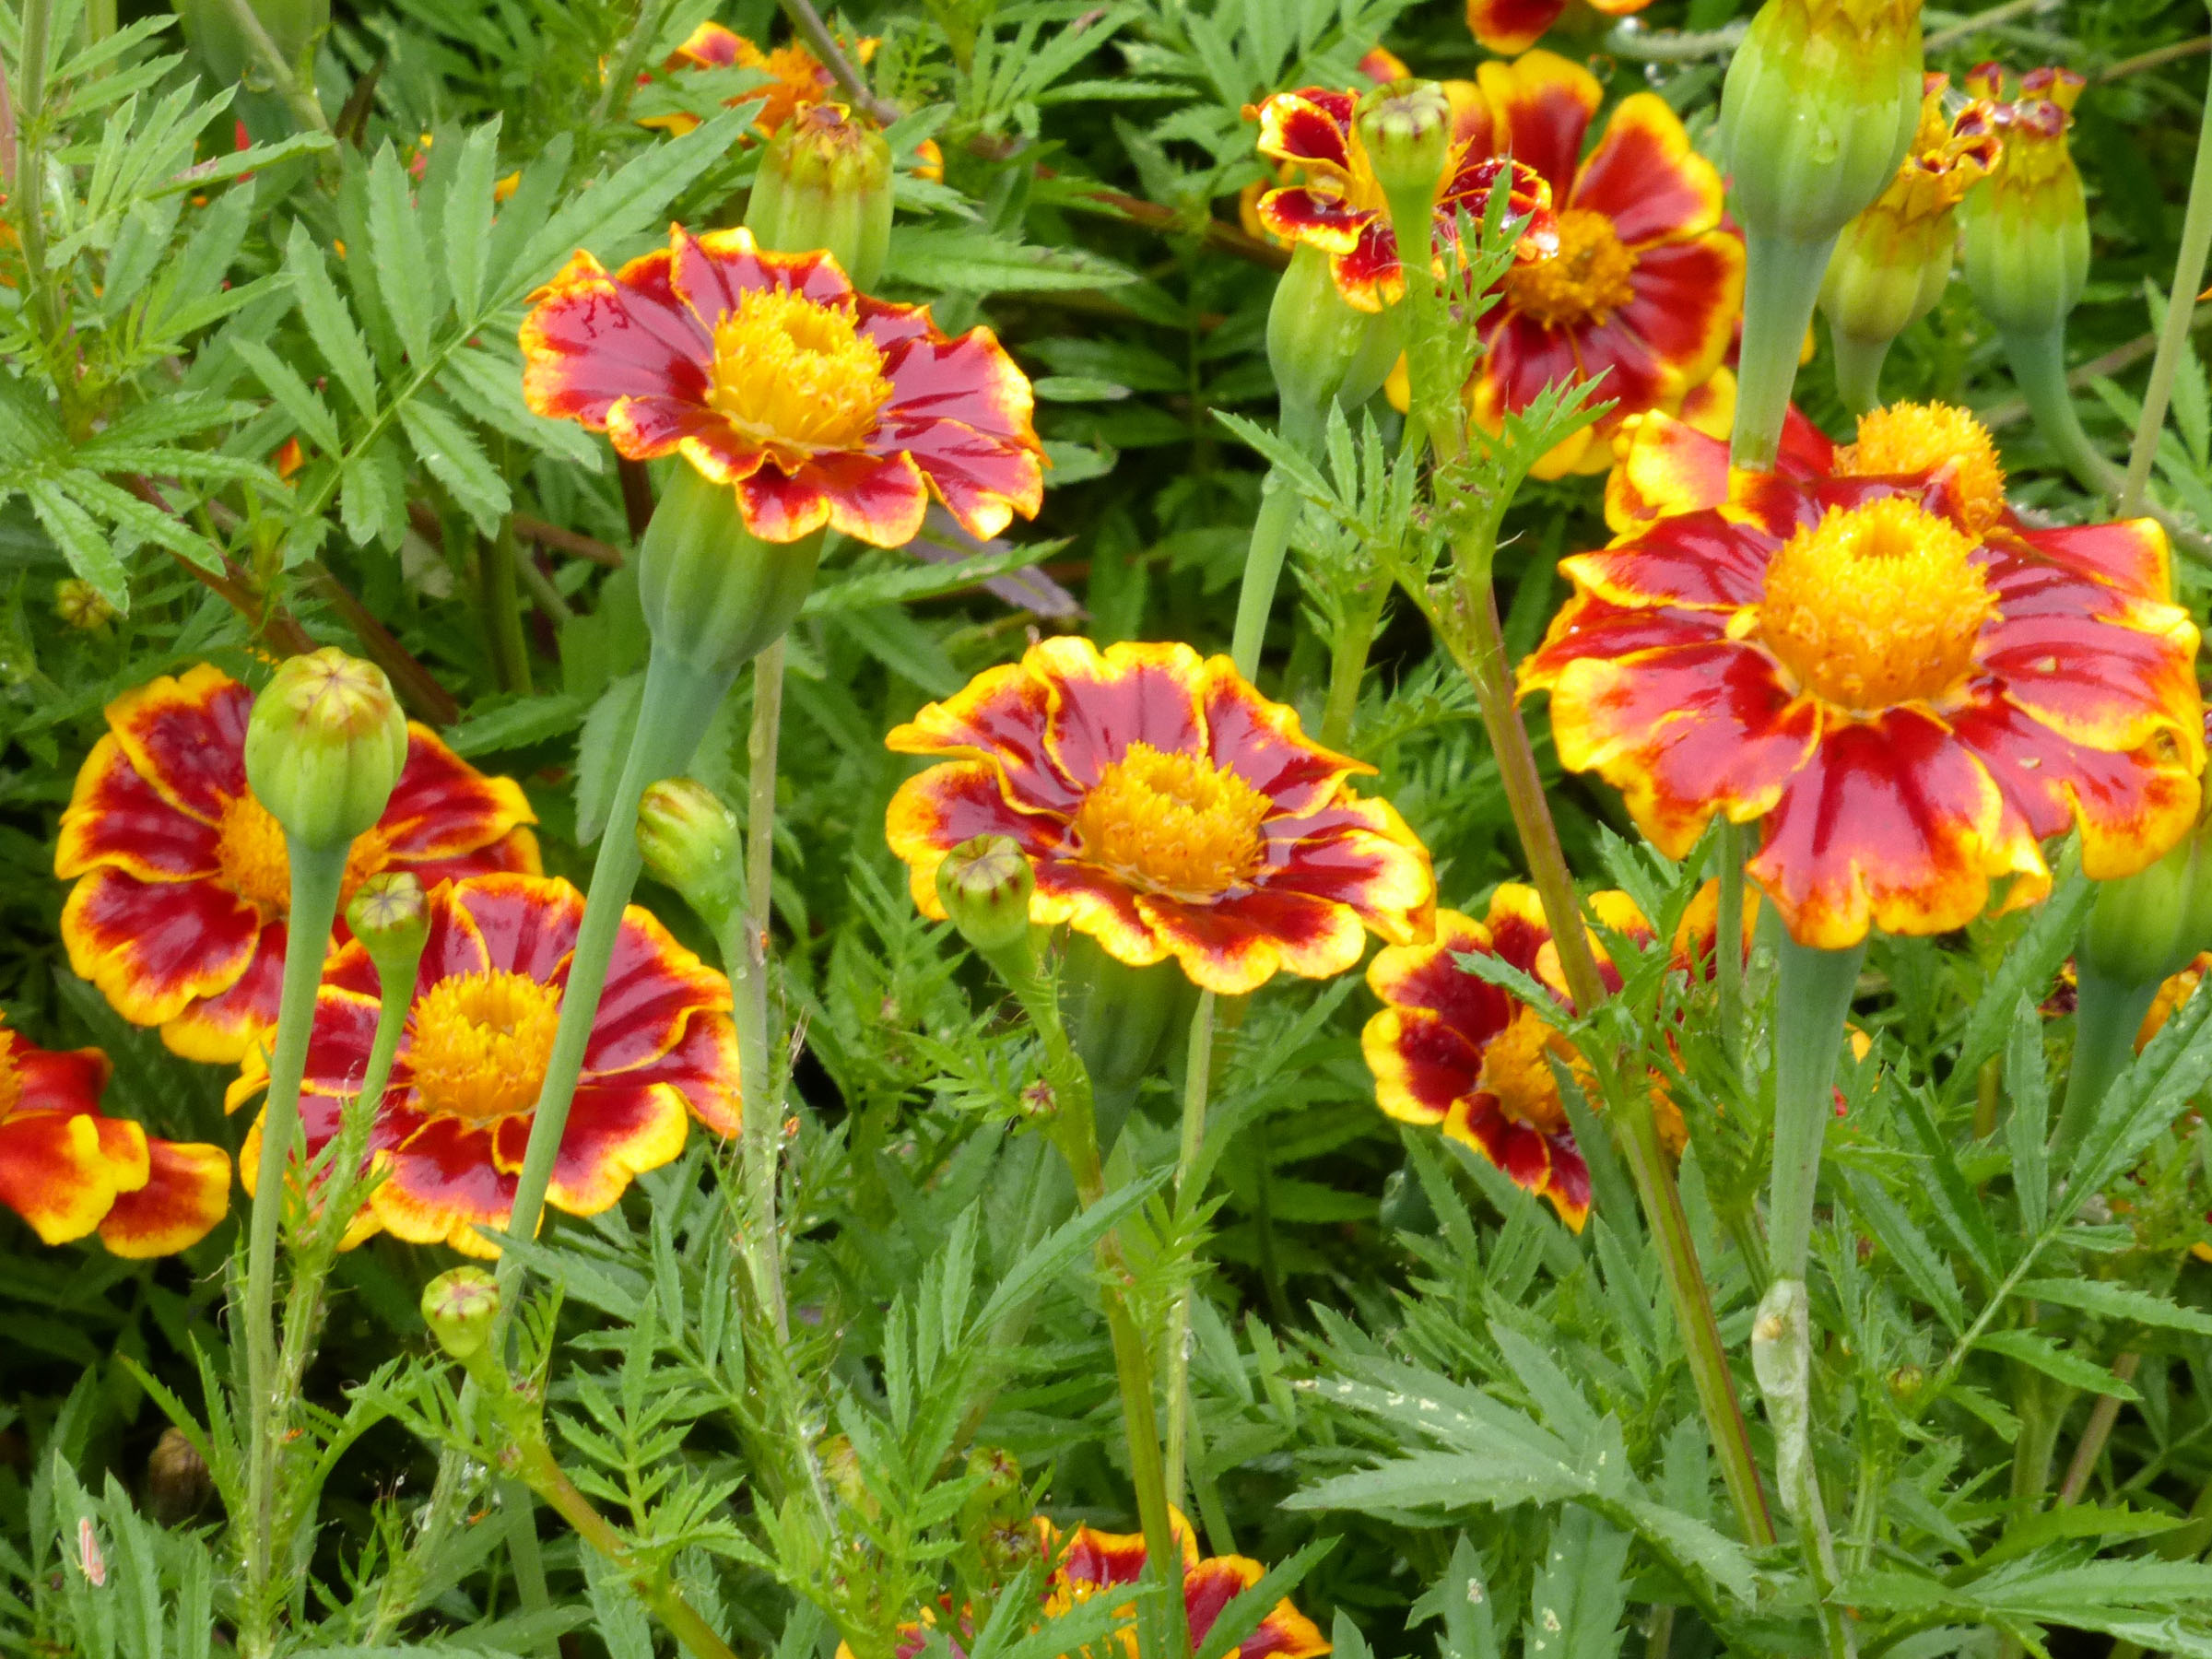 French marigold francess choice 05 g southern exposure seed click to enlarge mightylinksfo